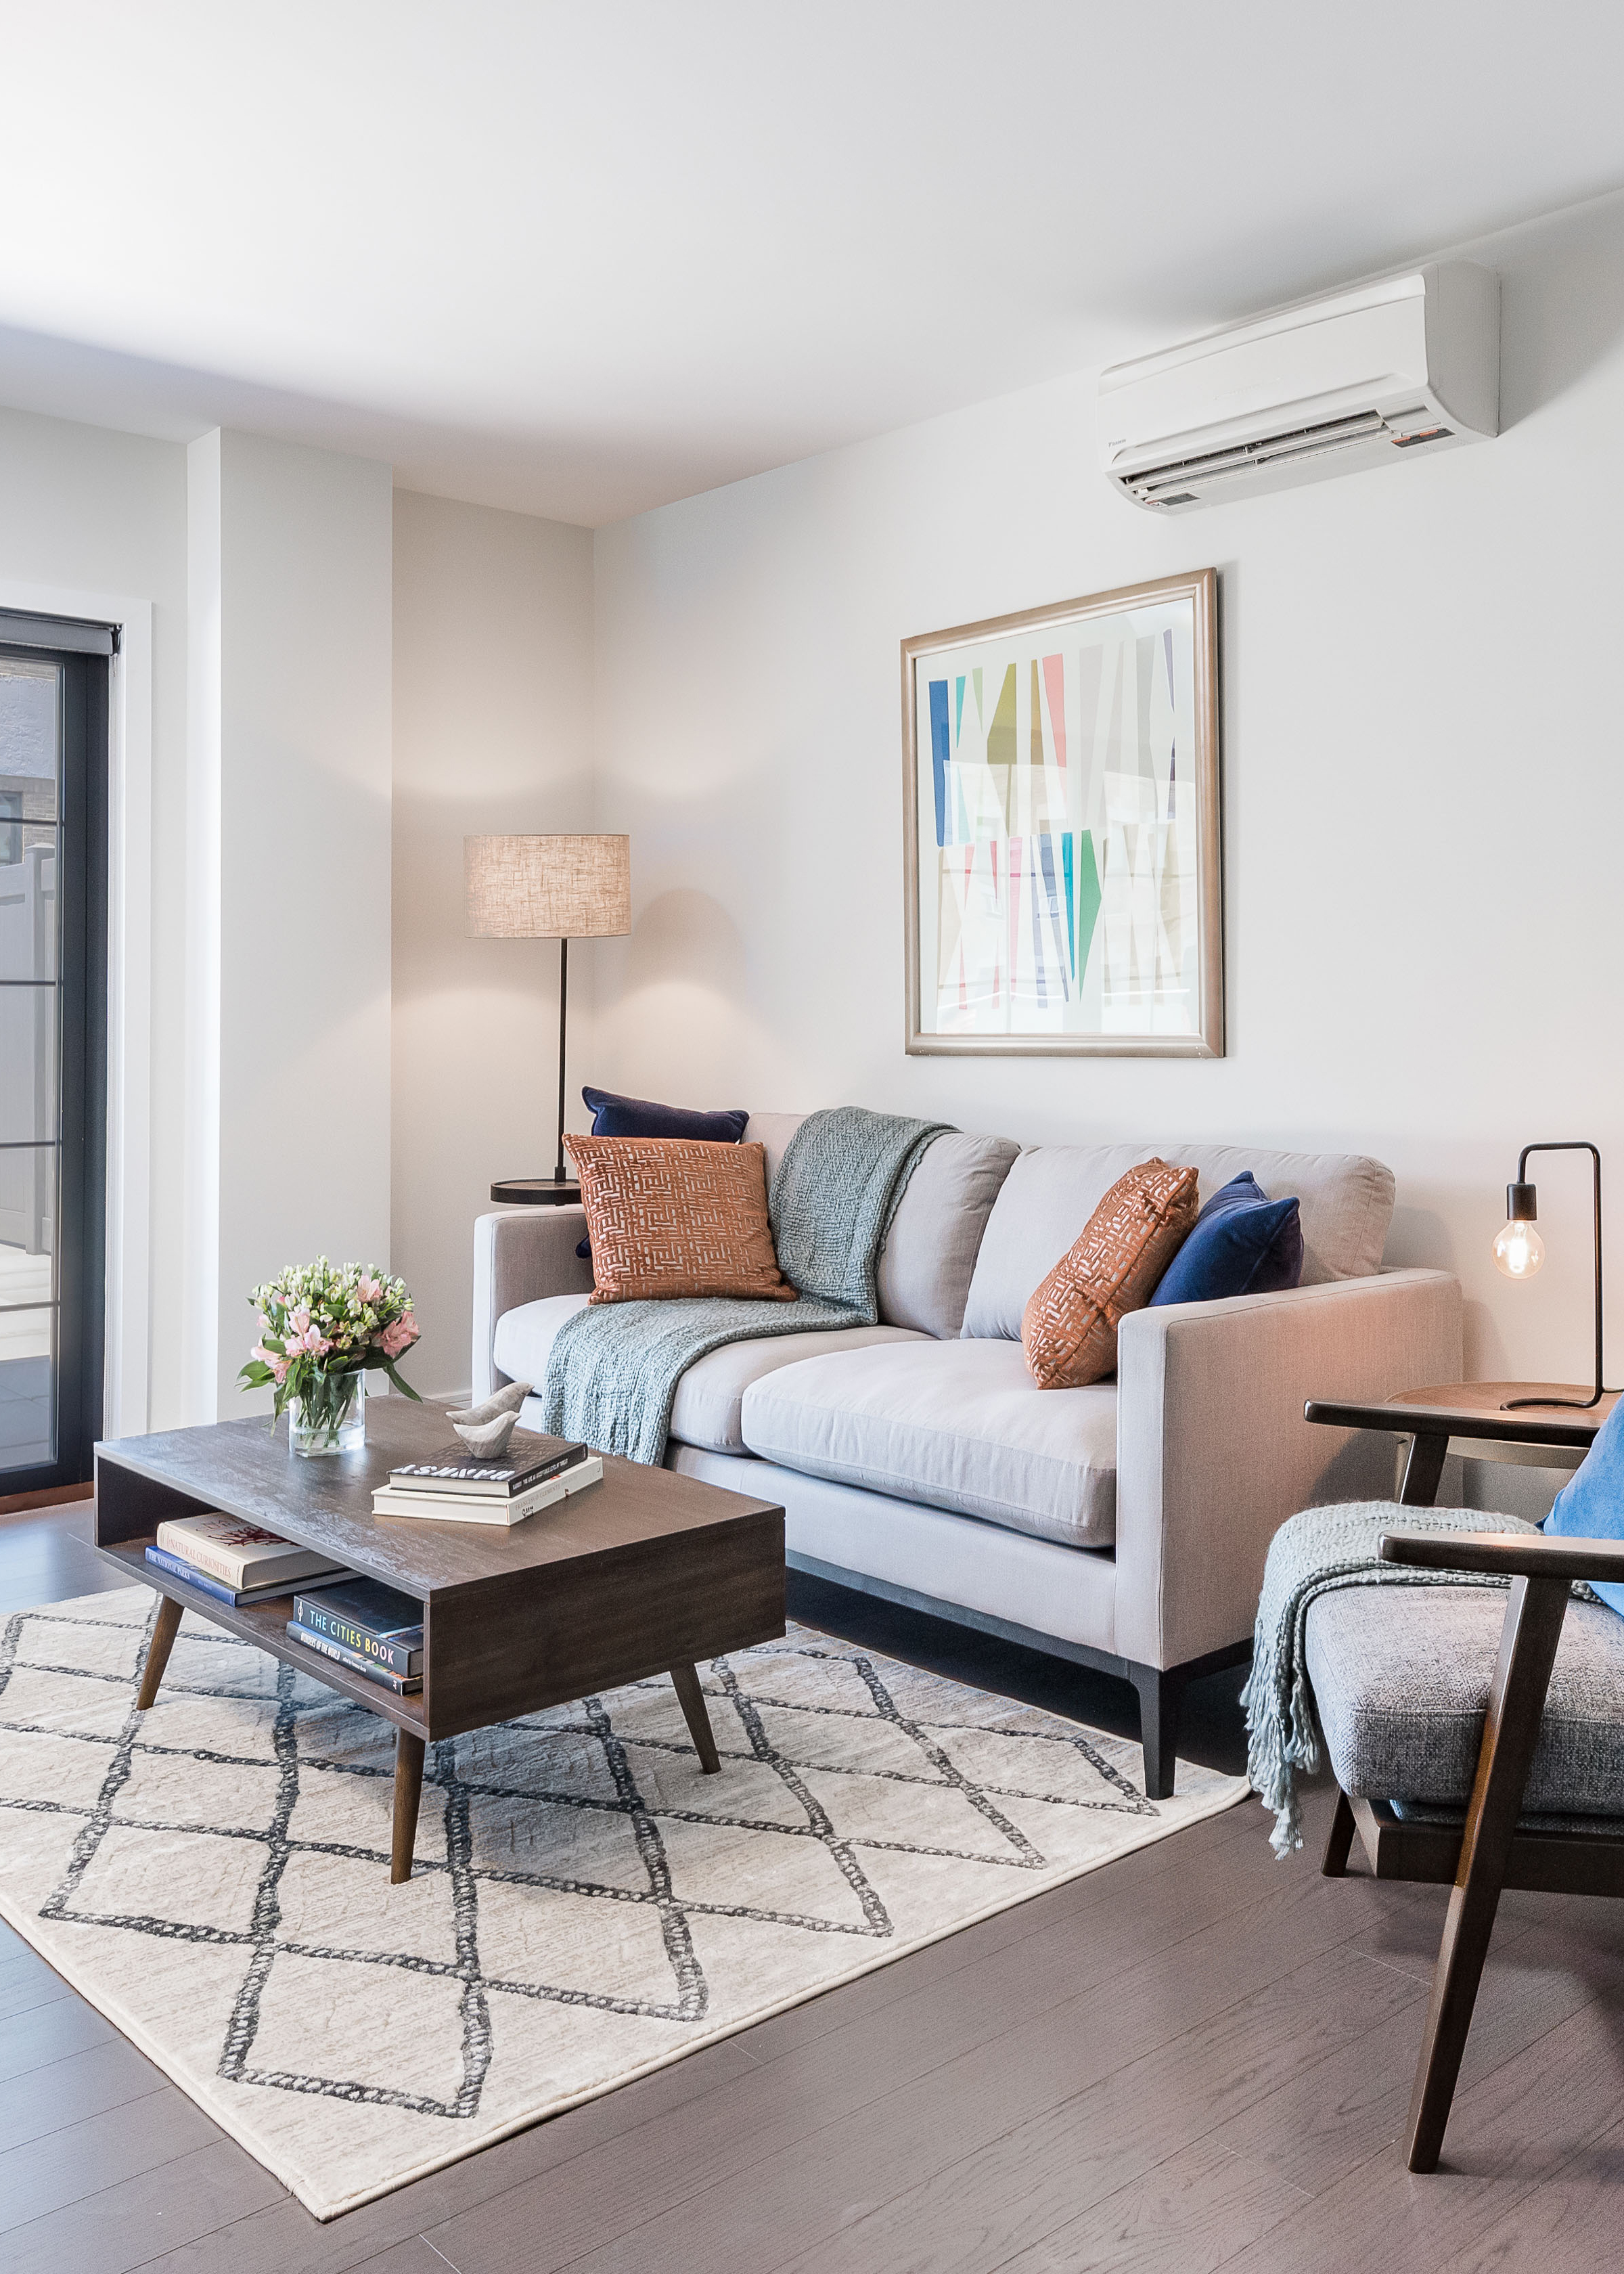 - This appealing 23-unit luxury rental, on 40-05 Crescent Street, thoroughly blends contemporary styling with exceptional comfort. Well situated in heart of Long Island City, you'll be at the center of a dynamic neighborhood where possibilities are always unfolding.